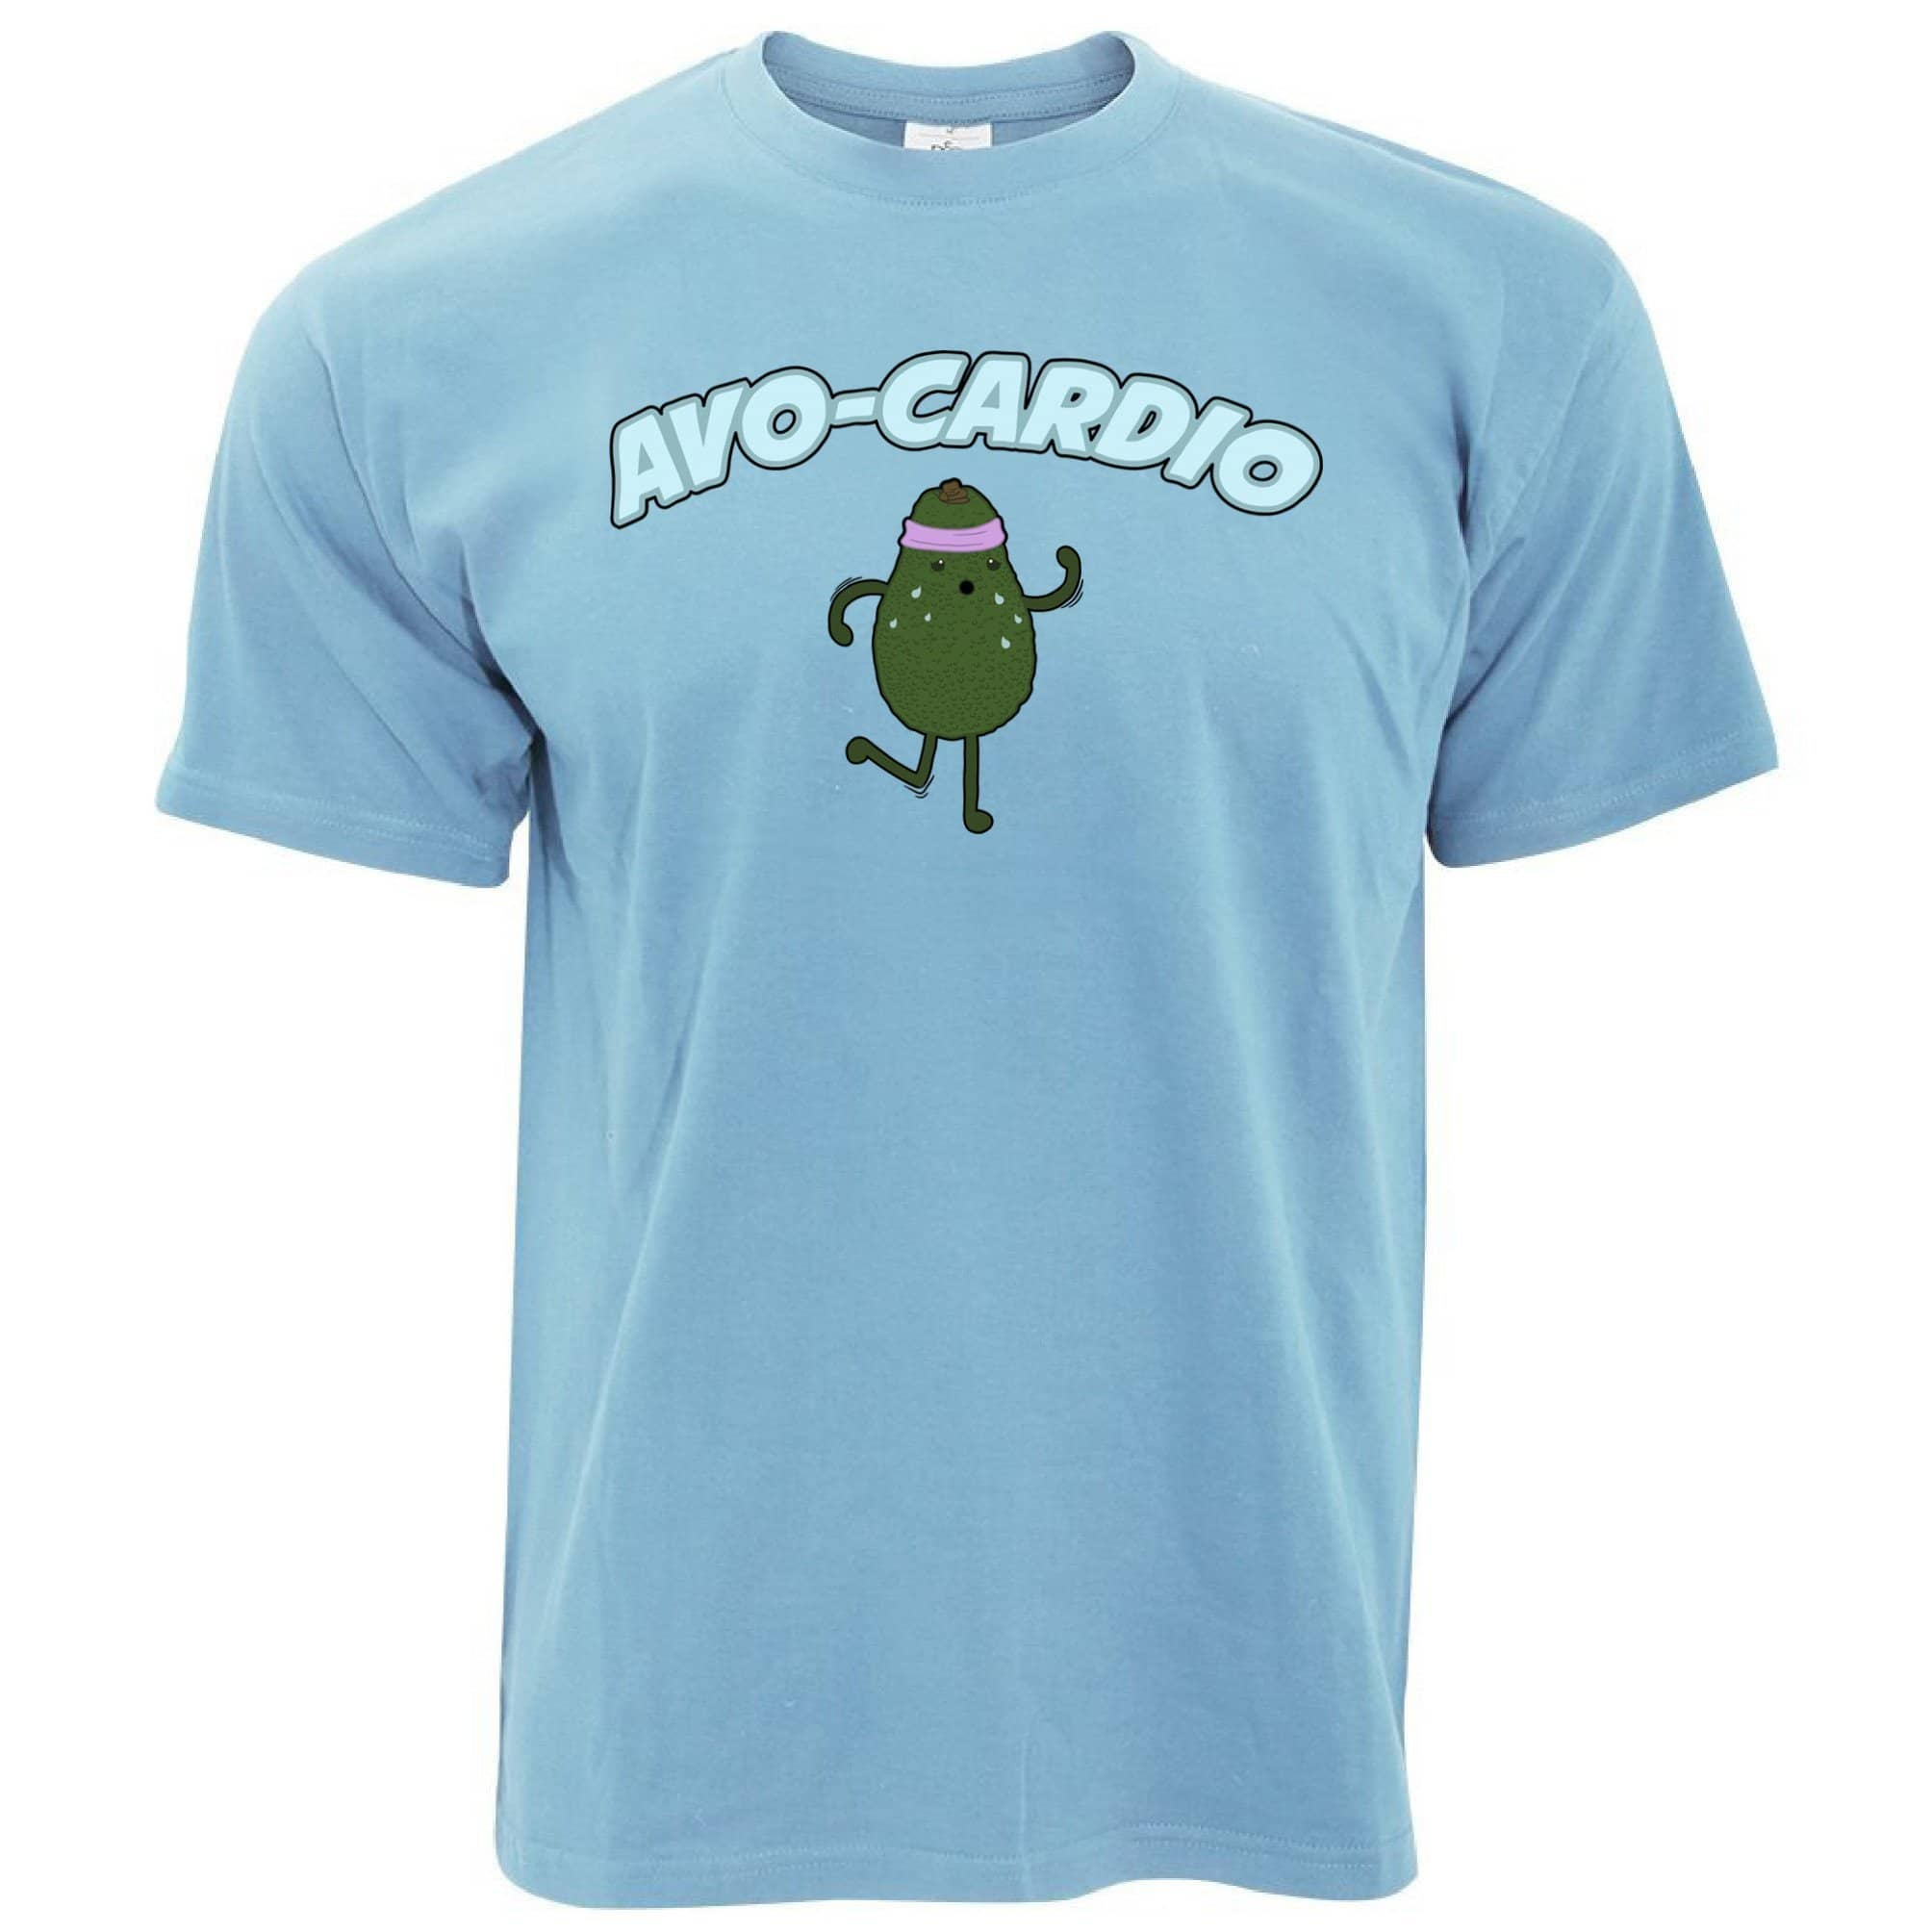 Cute Avocado T Shirt Avo-Cardio Workout Pun Slogan